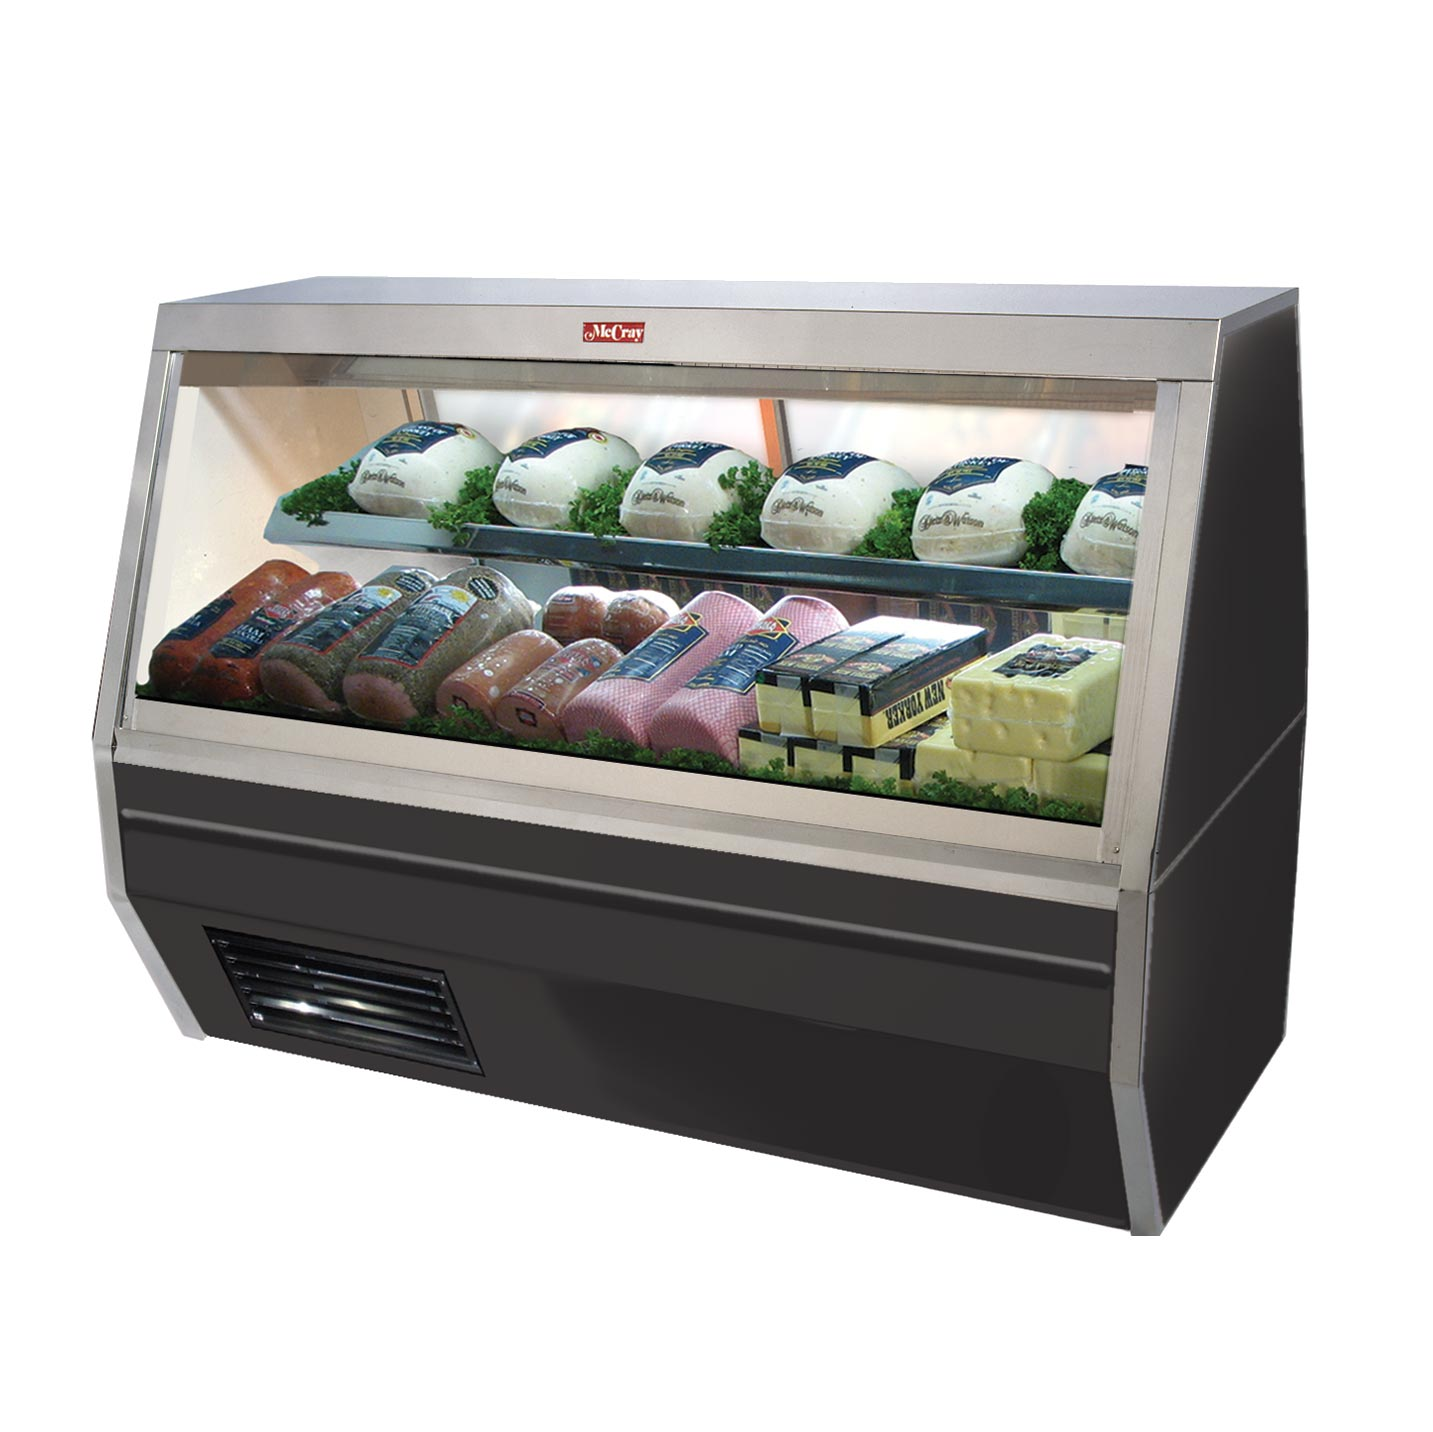 Howard-McCray SC-CDS35-4-BE-LED display case, refrigerated deli